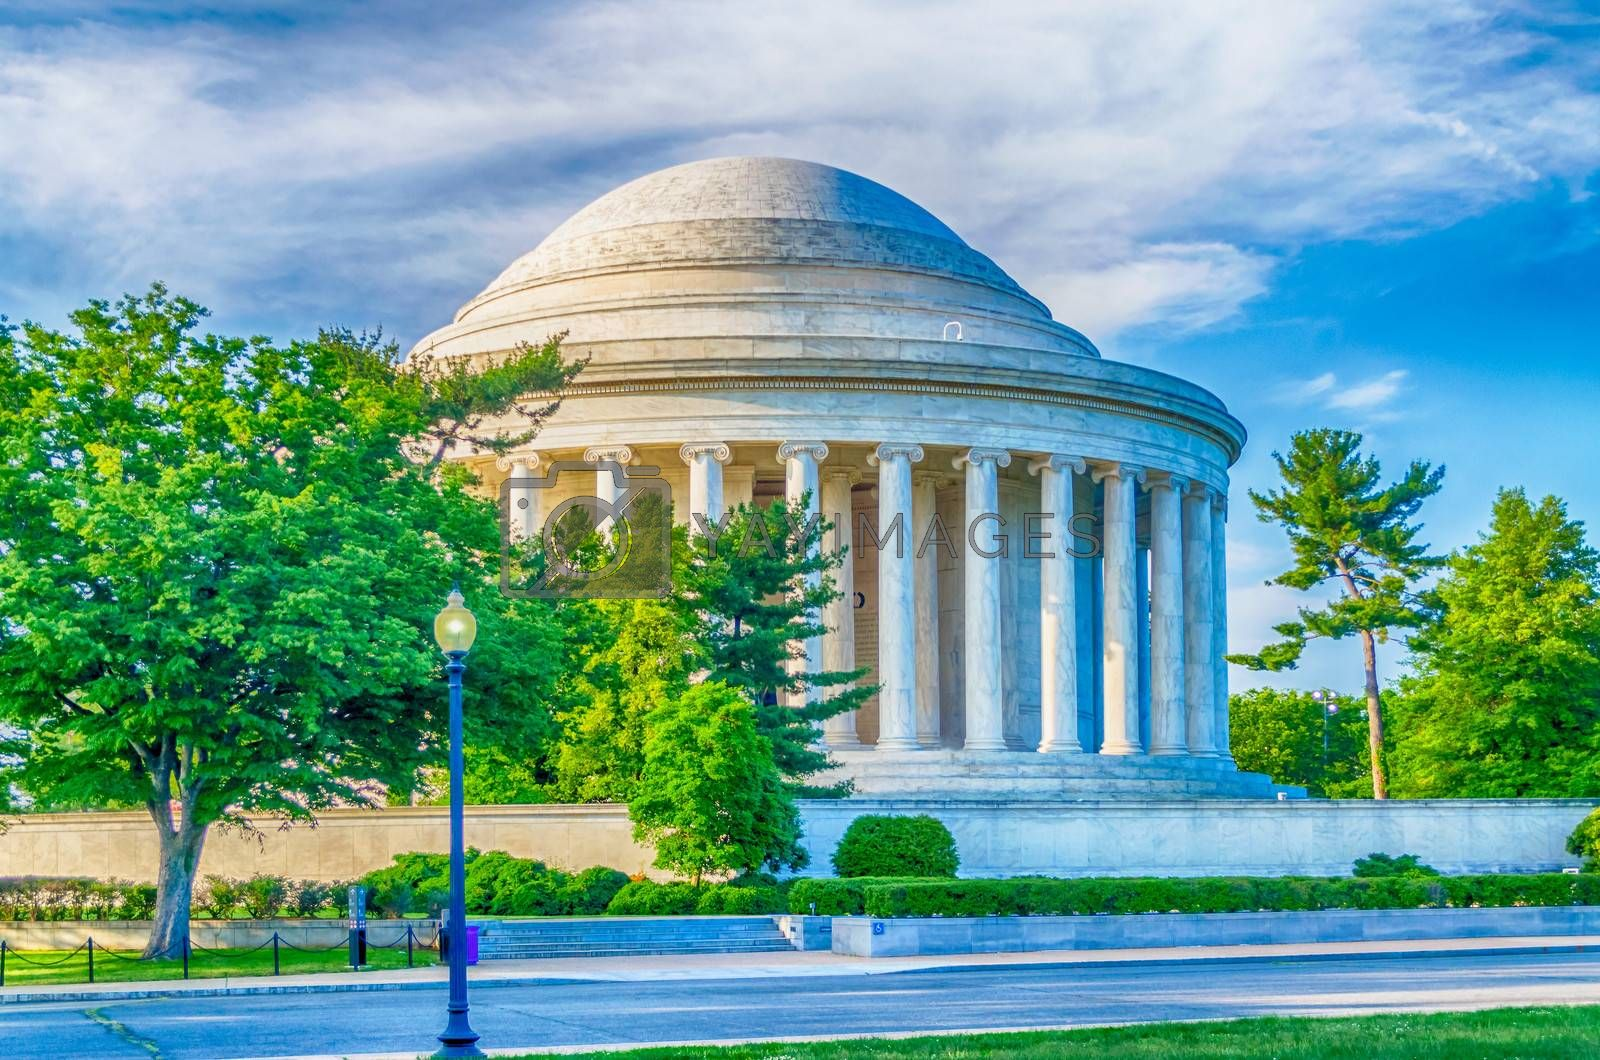 Jefferson Memorial in Washington DC by Marco Rubino